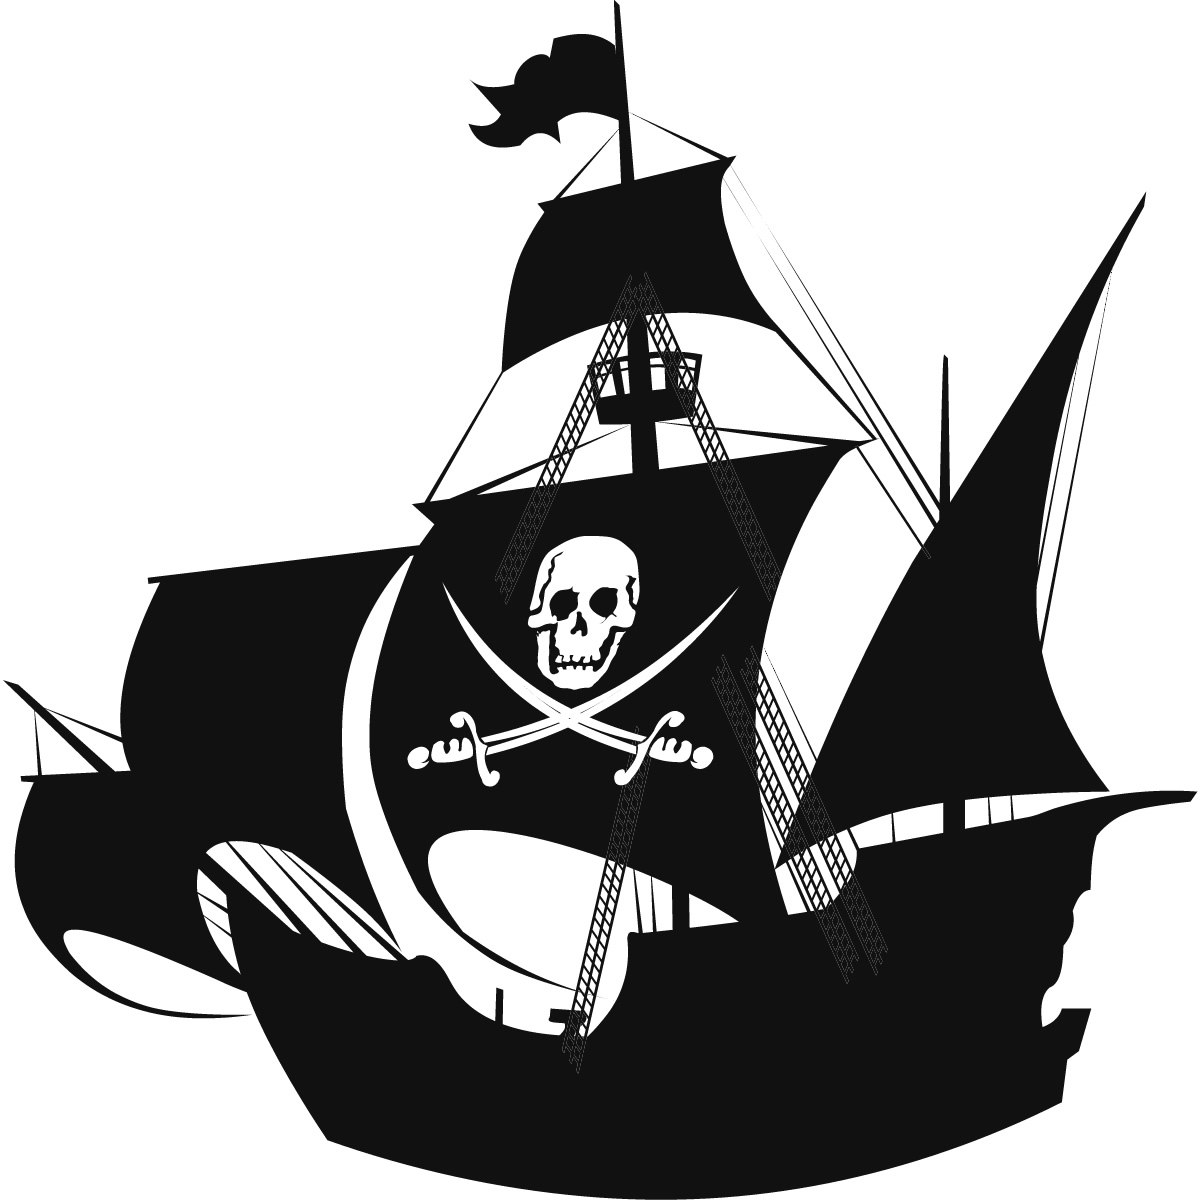 Pirate ship clip art black and white - photo#10